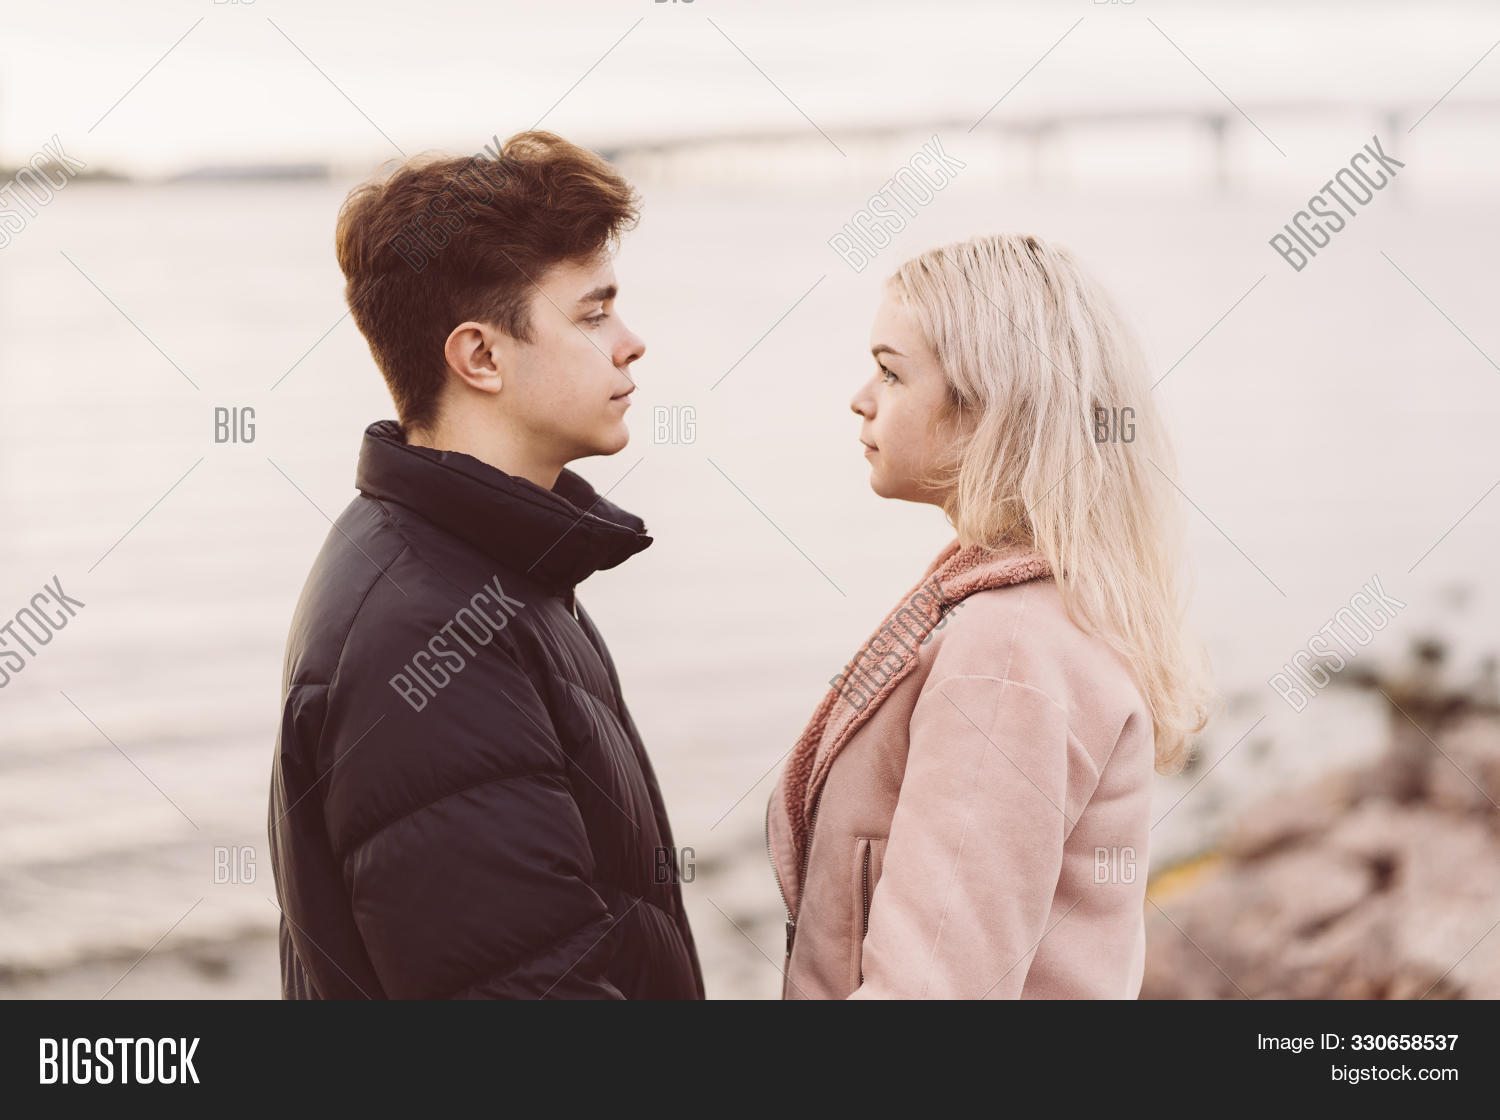 adult,attractive,autumn,bay,bonding,boy,boyfriend,care,closeup,concept,couple,date,dating,emotion,eyes,feeling,female,flirting,girl,girlfriend,happiness,important,lifestyle,light,look,looking,love,loving,male,man,outdoor,people,relationship,romantic,sea,sun,support,teenager,together,tree,water,woman,young